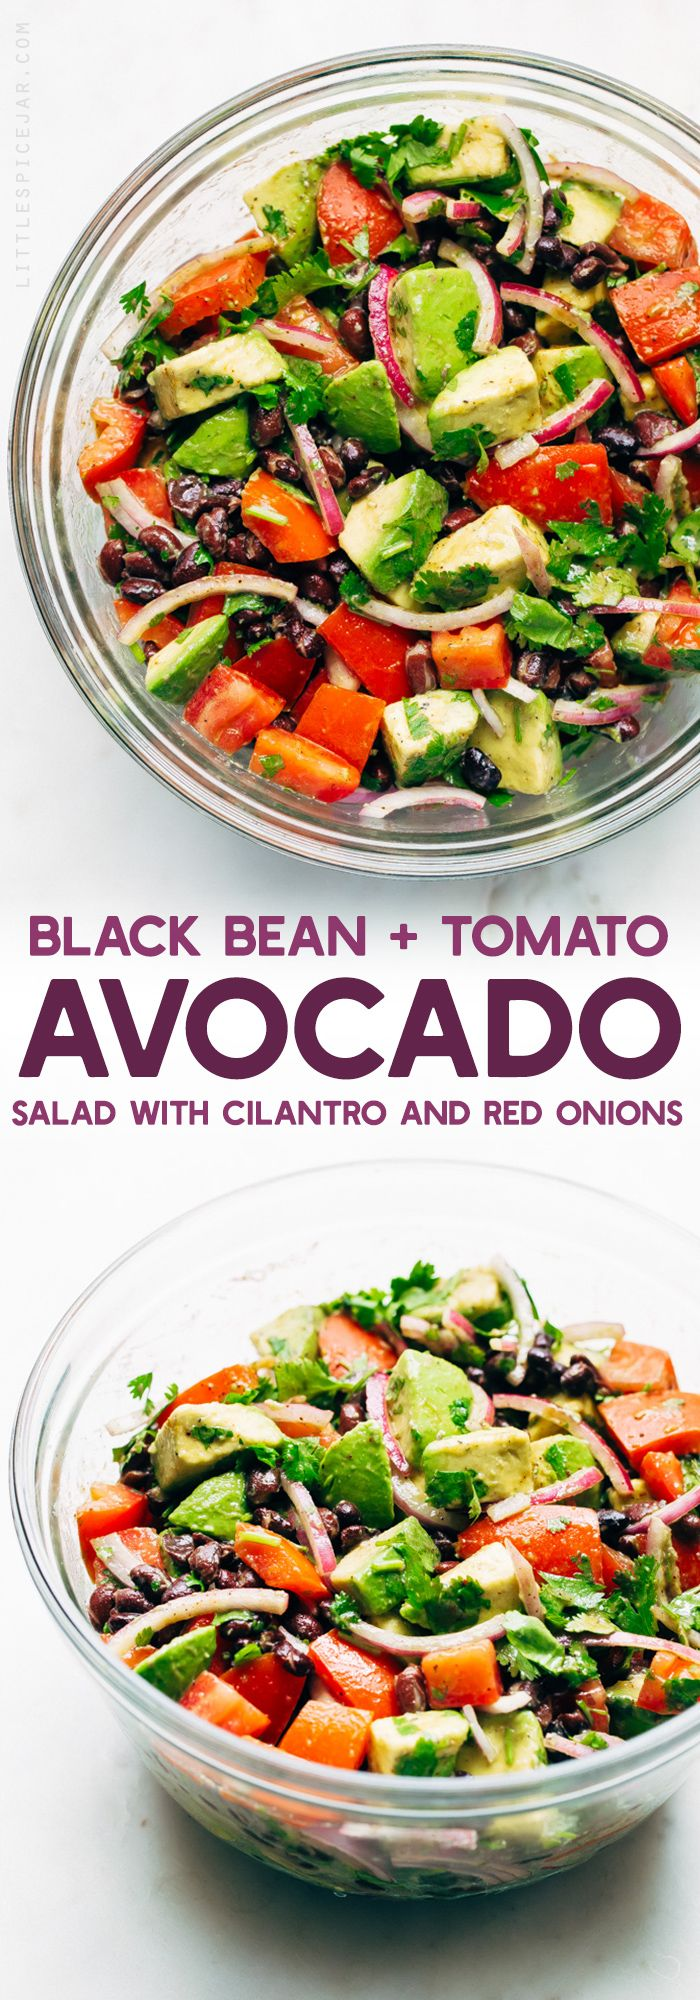 Black Bean Tomato Avocado Salad - A simple avocado salad that tastes just like guacamole! Who wouldn't love that? #avocado #avocadosalad #tomatoavocadosalad #blackbeansalad | Littlespicejar.com